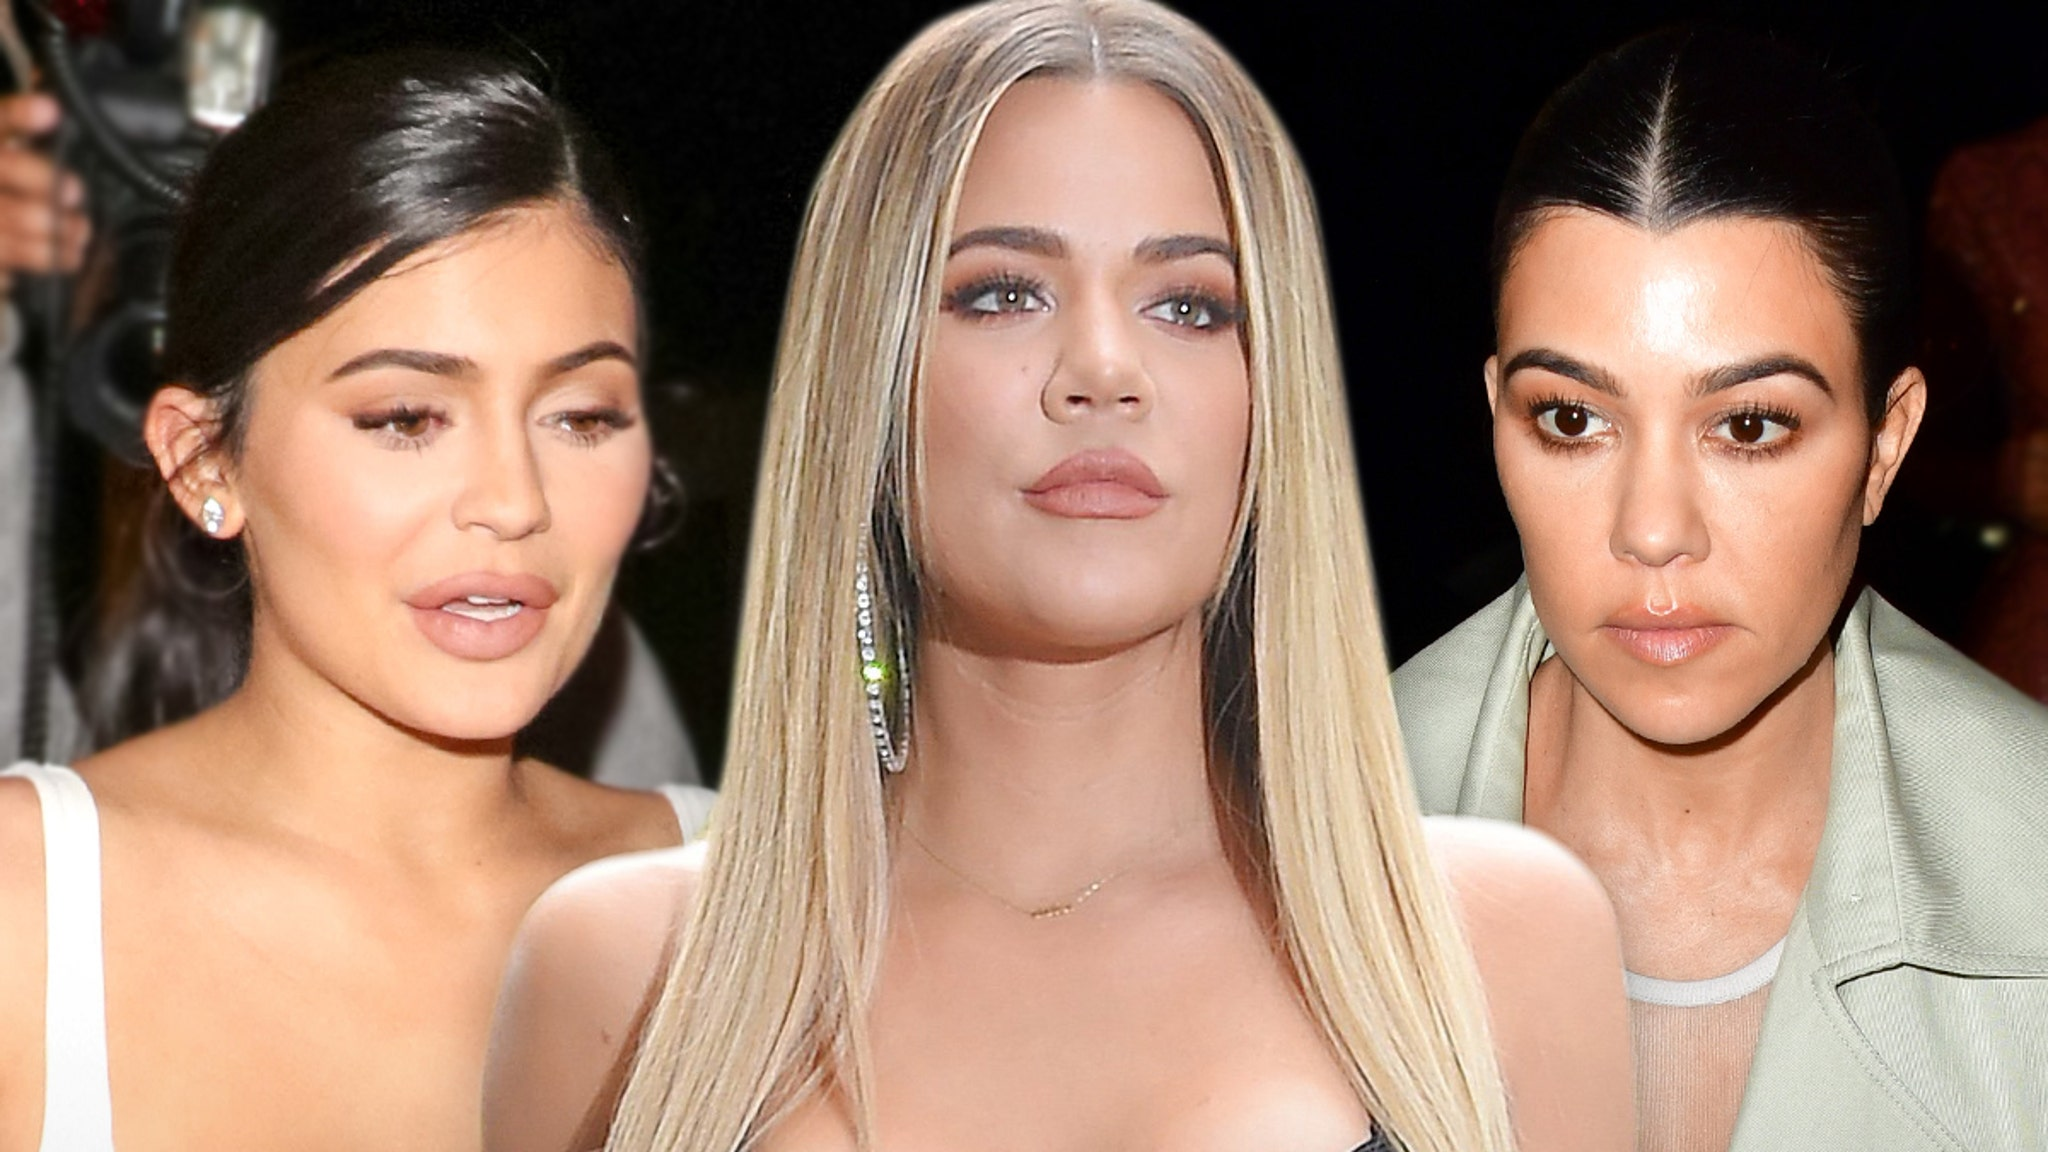 Kylie, Khloe and Kourtney We Don't Have Written Custody Agreements ... That's How We Roll